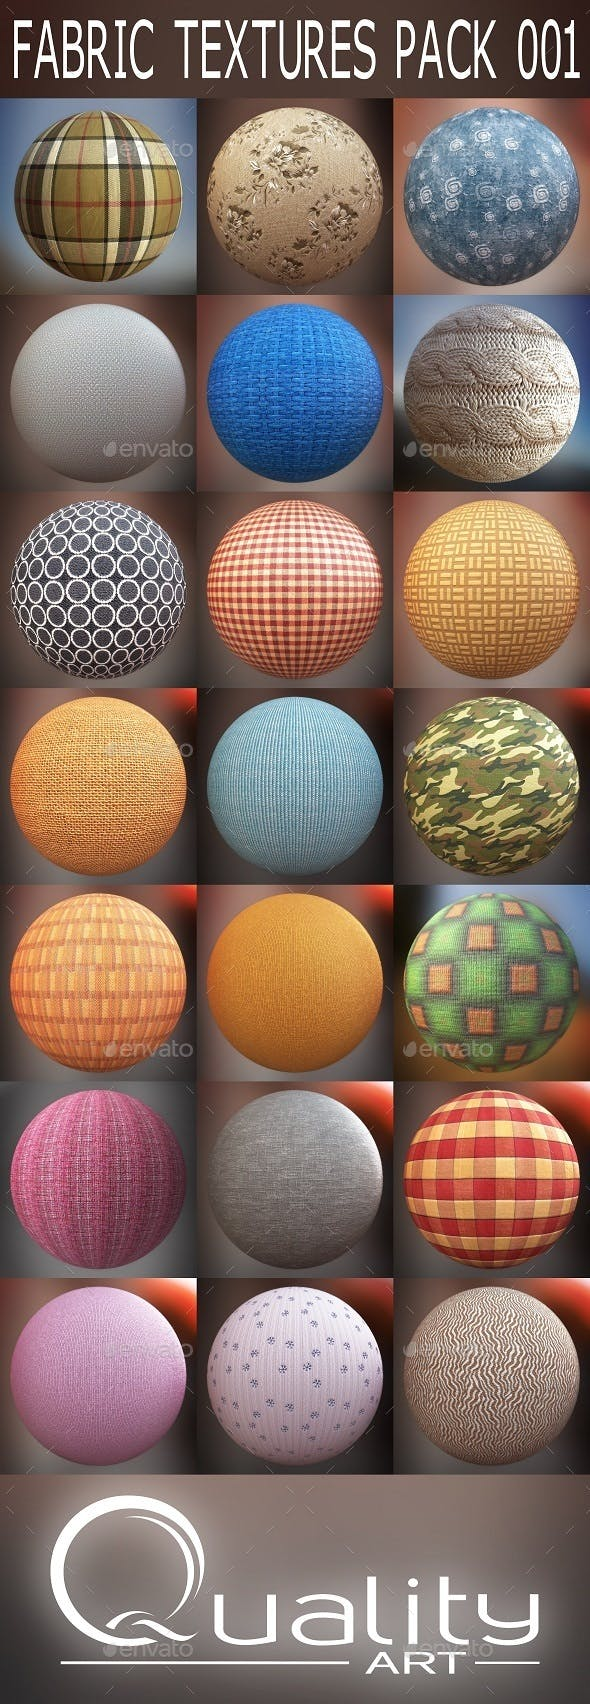 FABRIC TEXTURES PACK 001 - 3DOcean Item for Sale